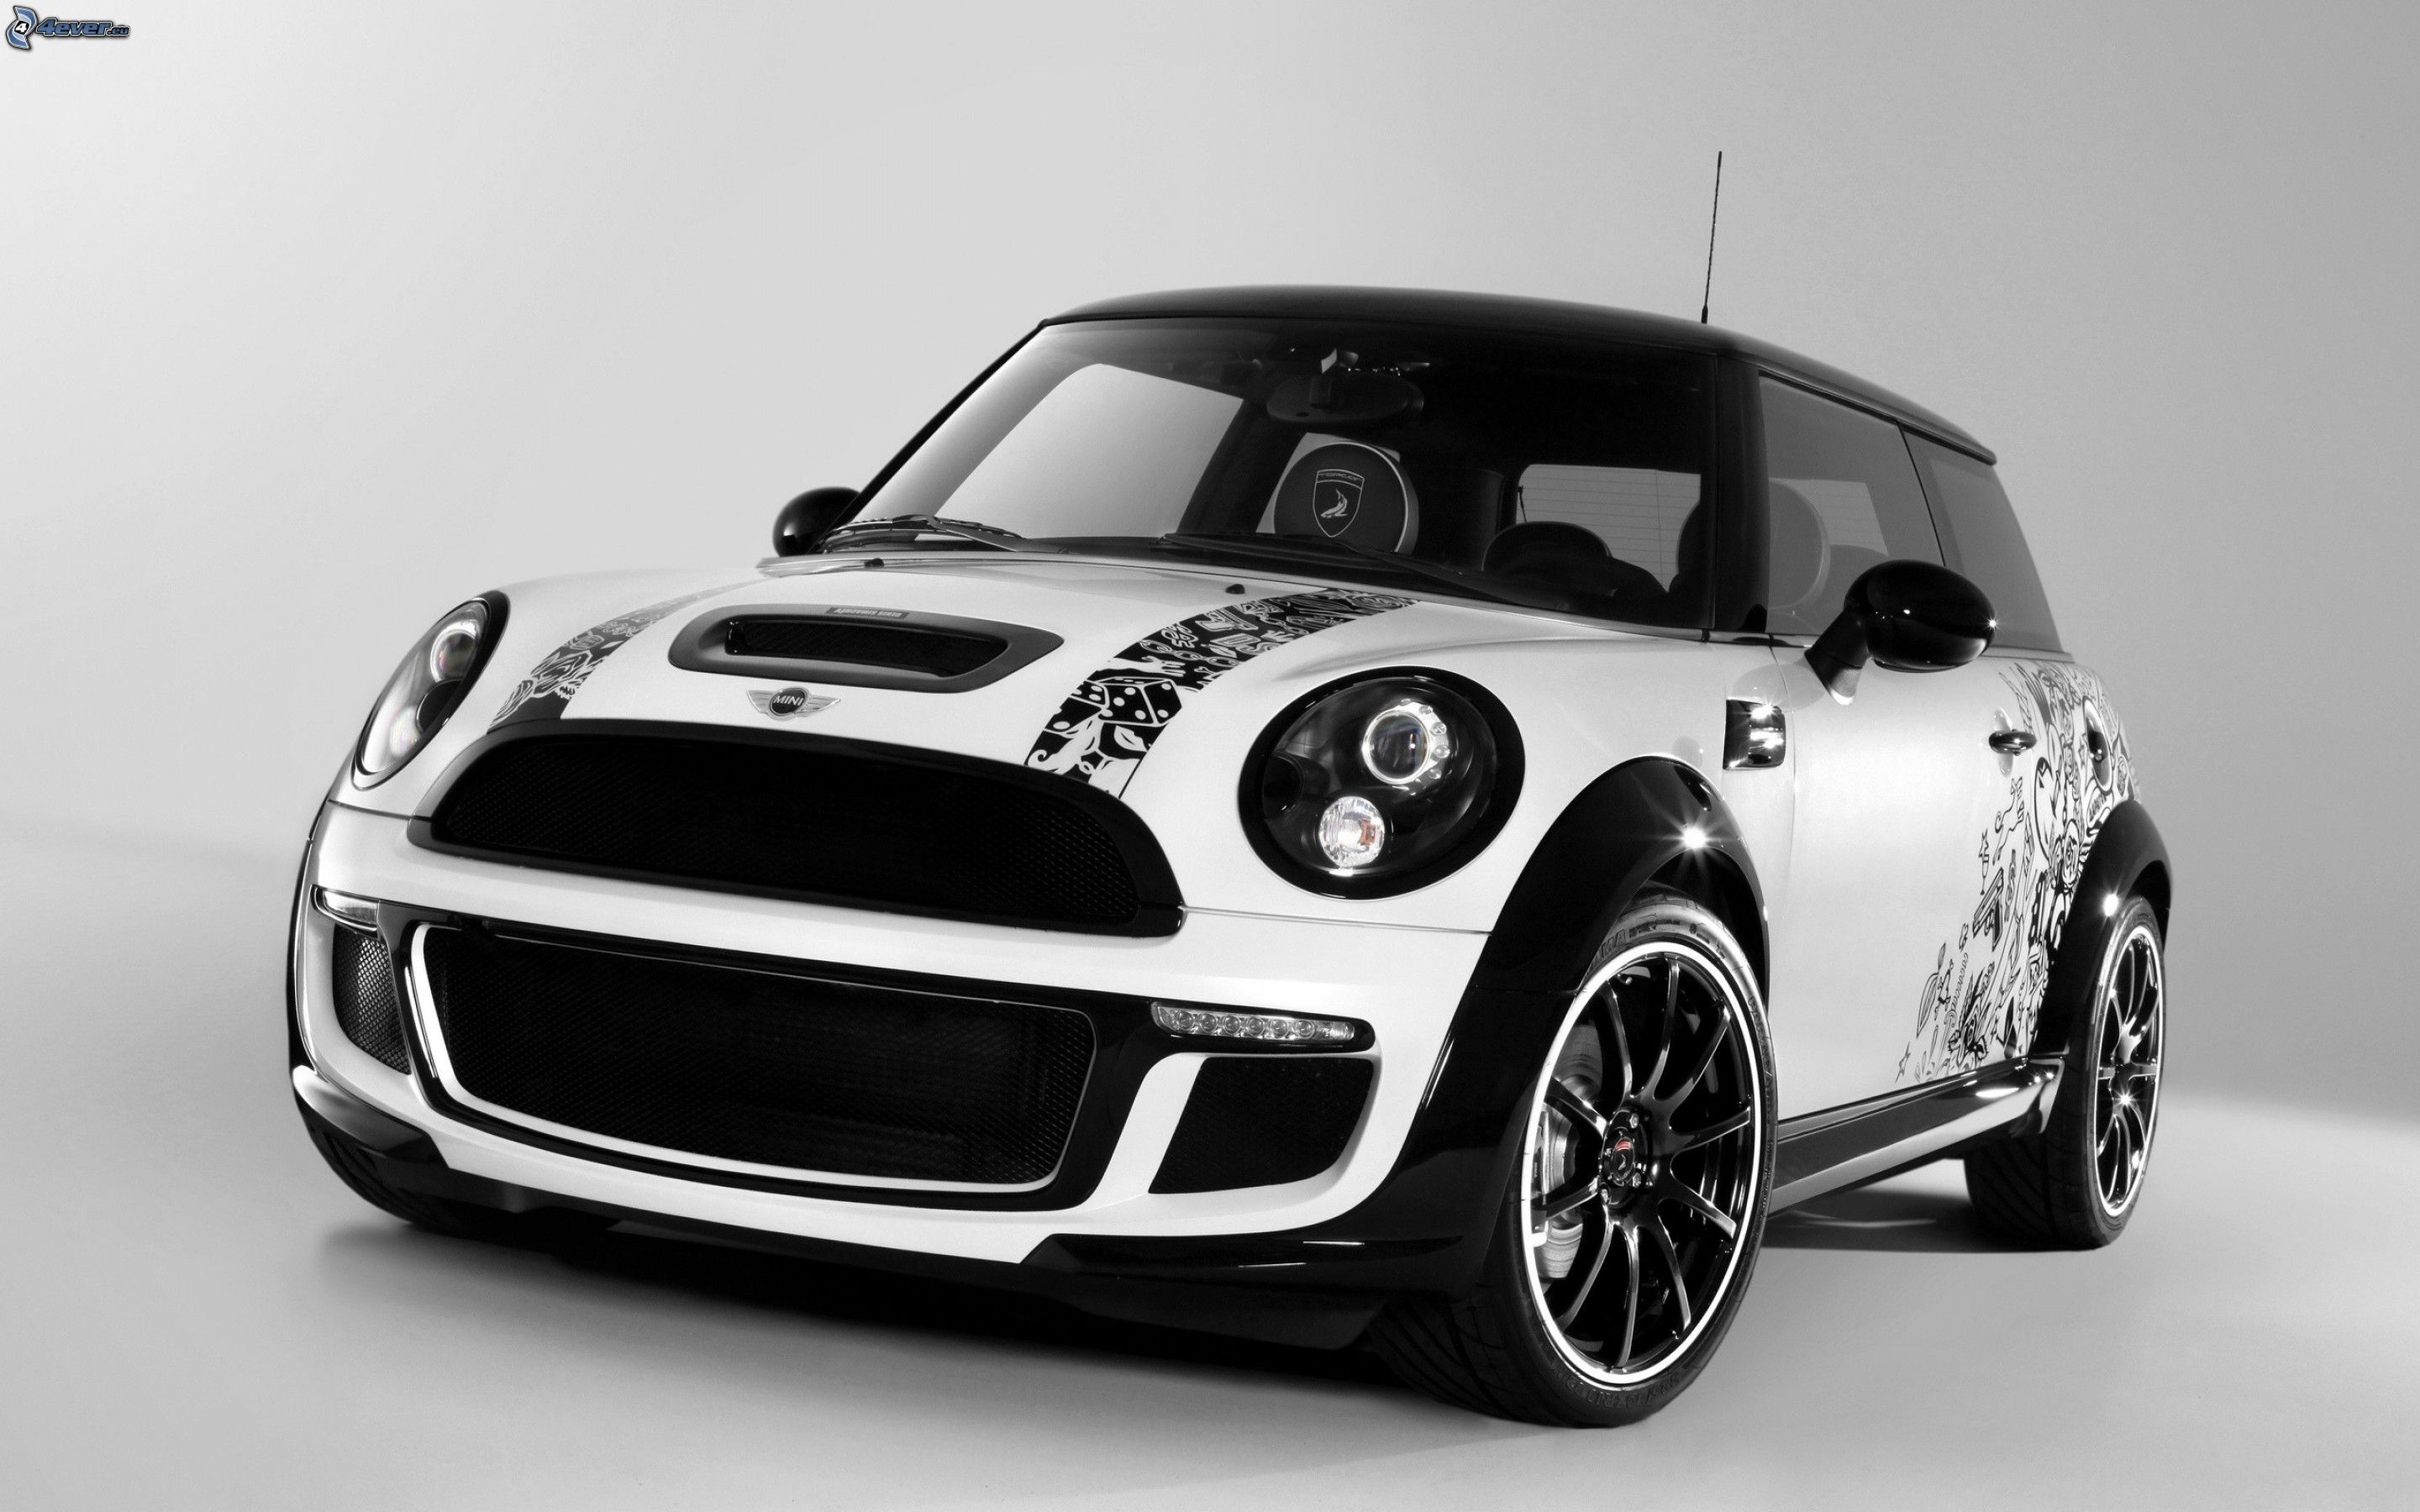 tuning pour mini cooper tuning mini cooper sur enperdresonlapin. Black Bedroom Furniture Sets. Home Design Ideas